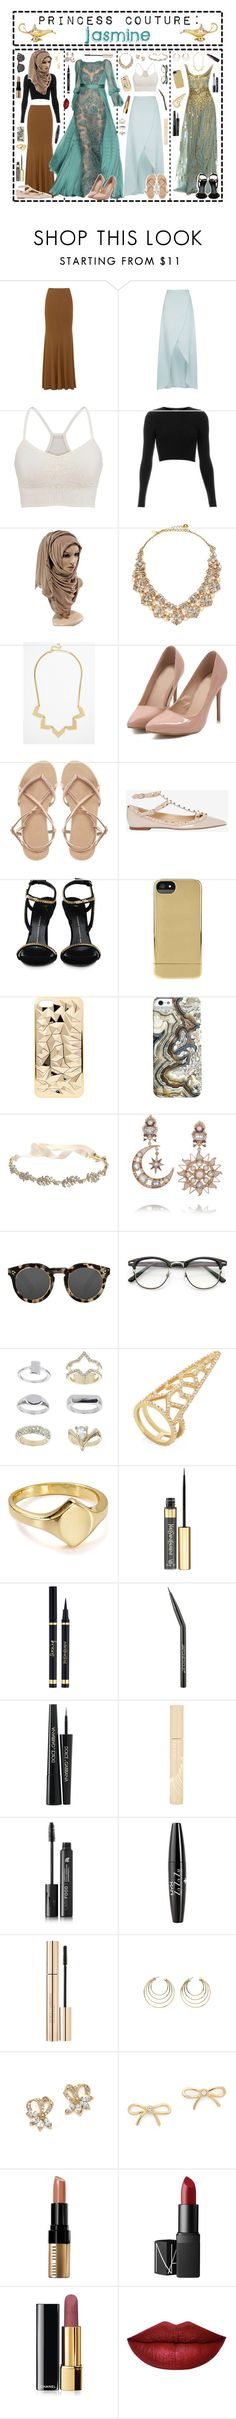 """""""- ̗̀ Princess Couture: Jasmine ̖́-"""" by i-get-a-little-bit-breathless ❤ liked on Polyvore featuring Donna Karan, Chloé, maurices, Topshop, Kate Spade, ASOS, Valentino, Giuseppe Zanotti, Incase and claire's"""